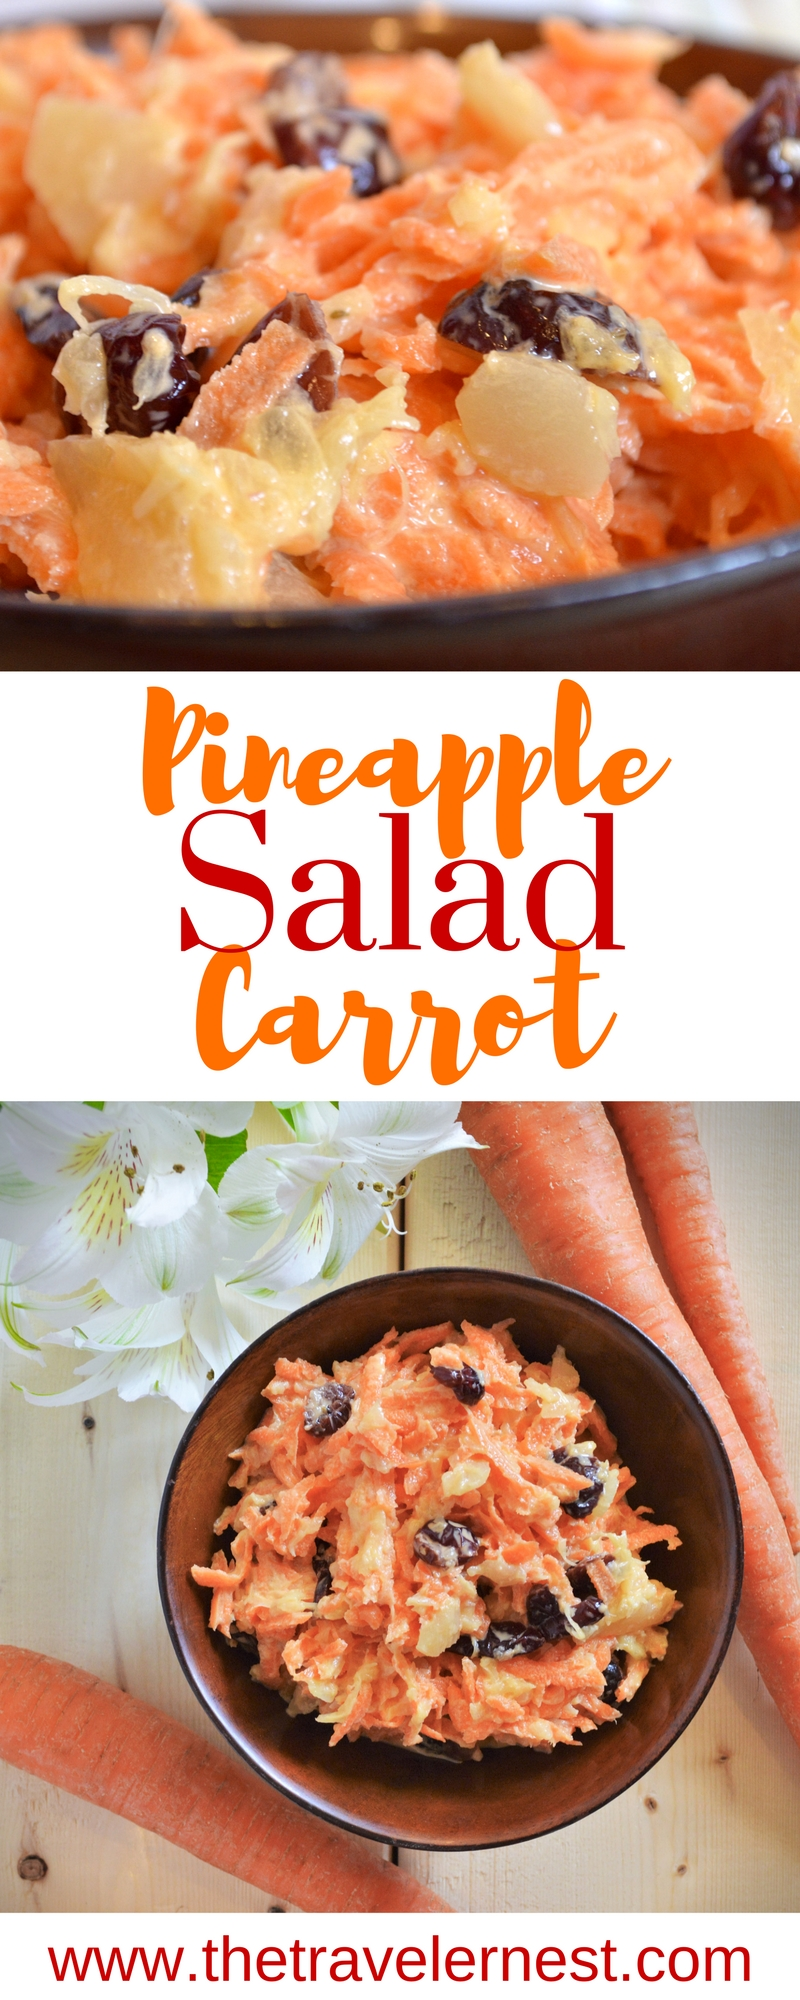 Pineapple Carrot Salad Recipe